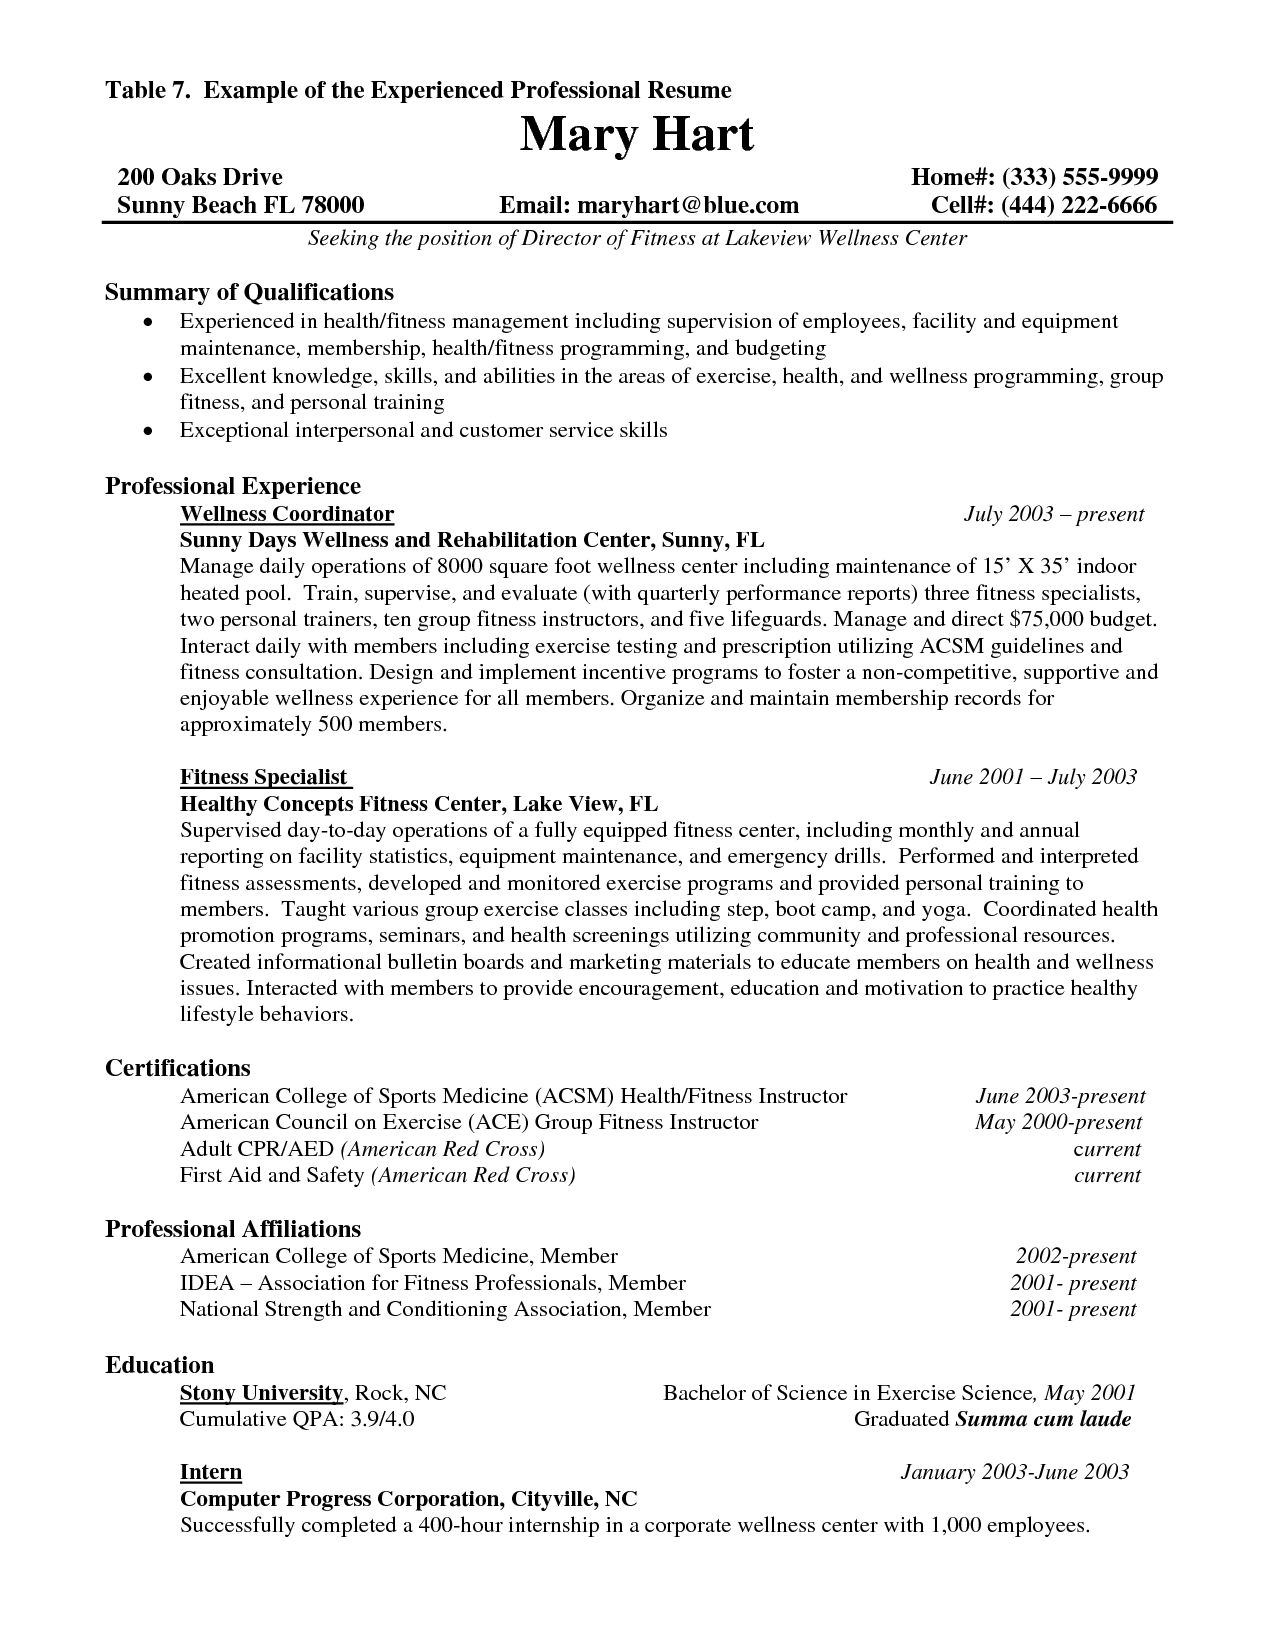 Resume Sample For Experienced Simple Resume Format For Experienced Professional  Resume Format And .